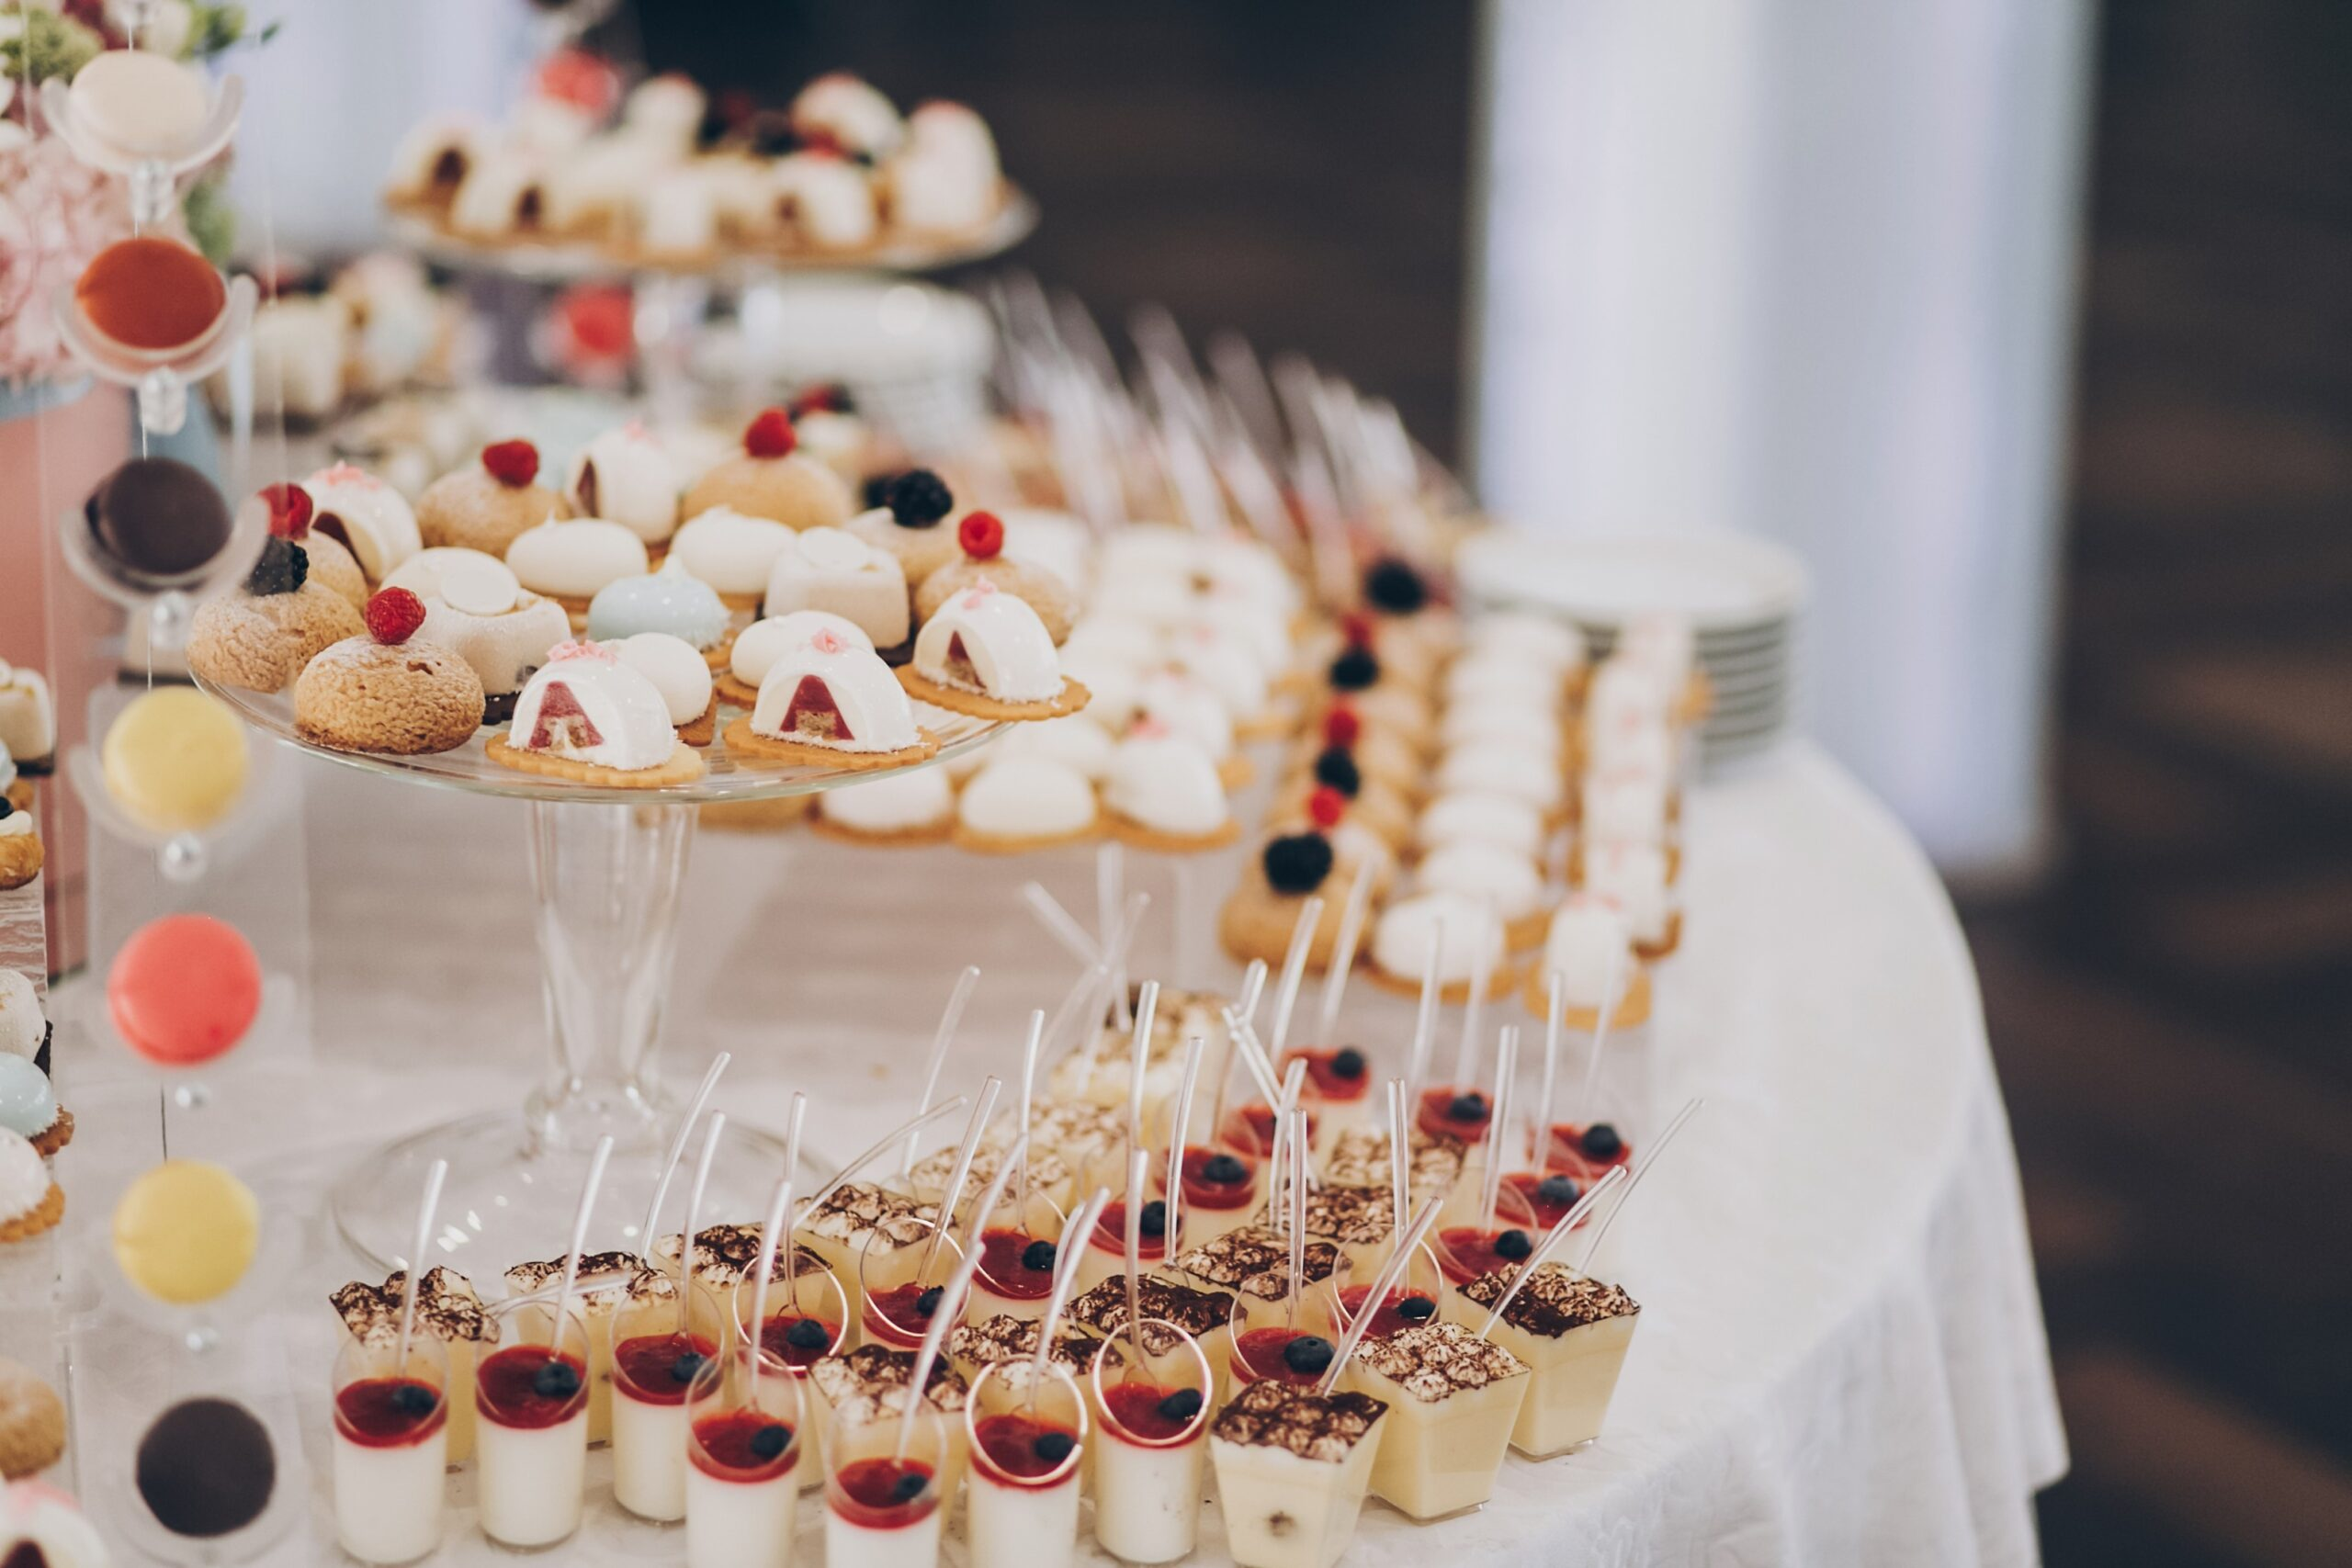 Wedding candy bar Delicious creamy desserts with fruits, panna cotta, cakes and cookies